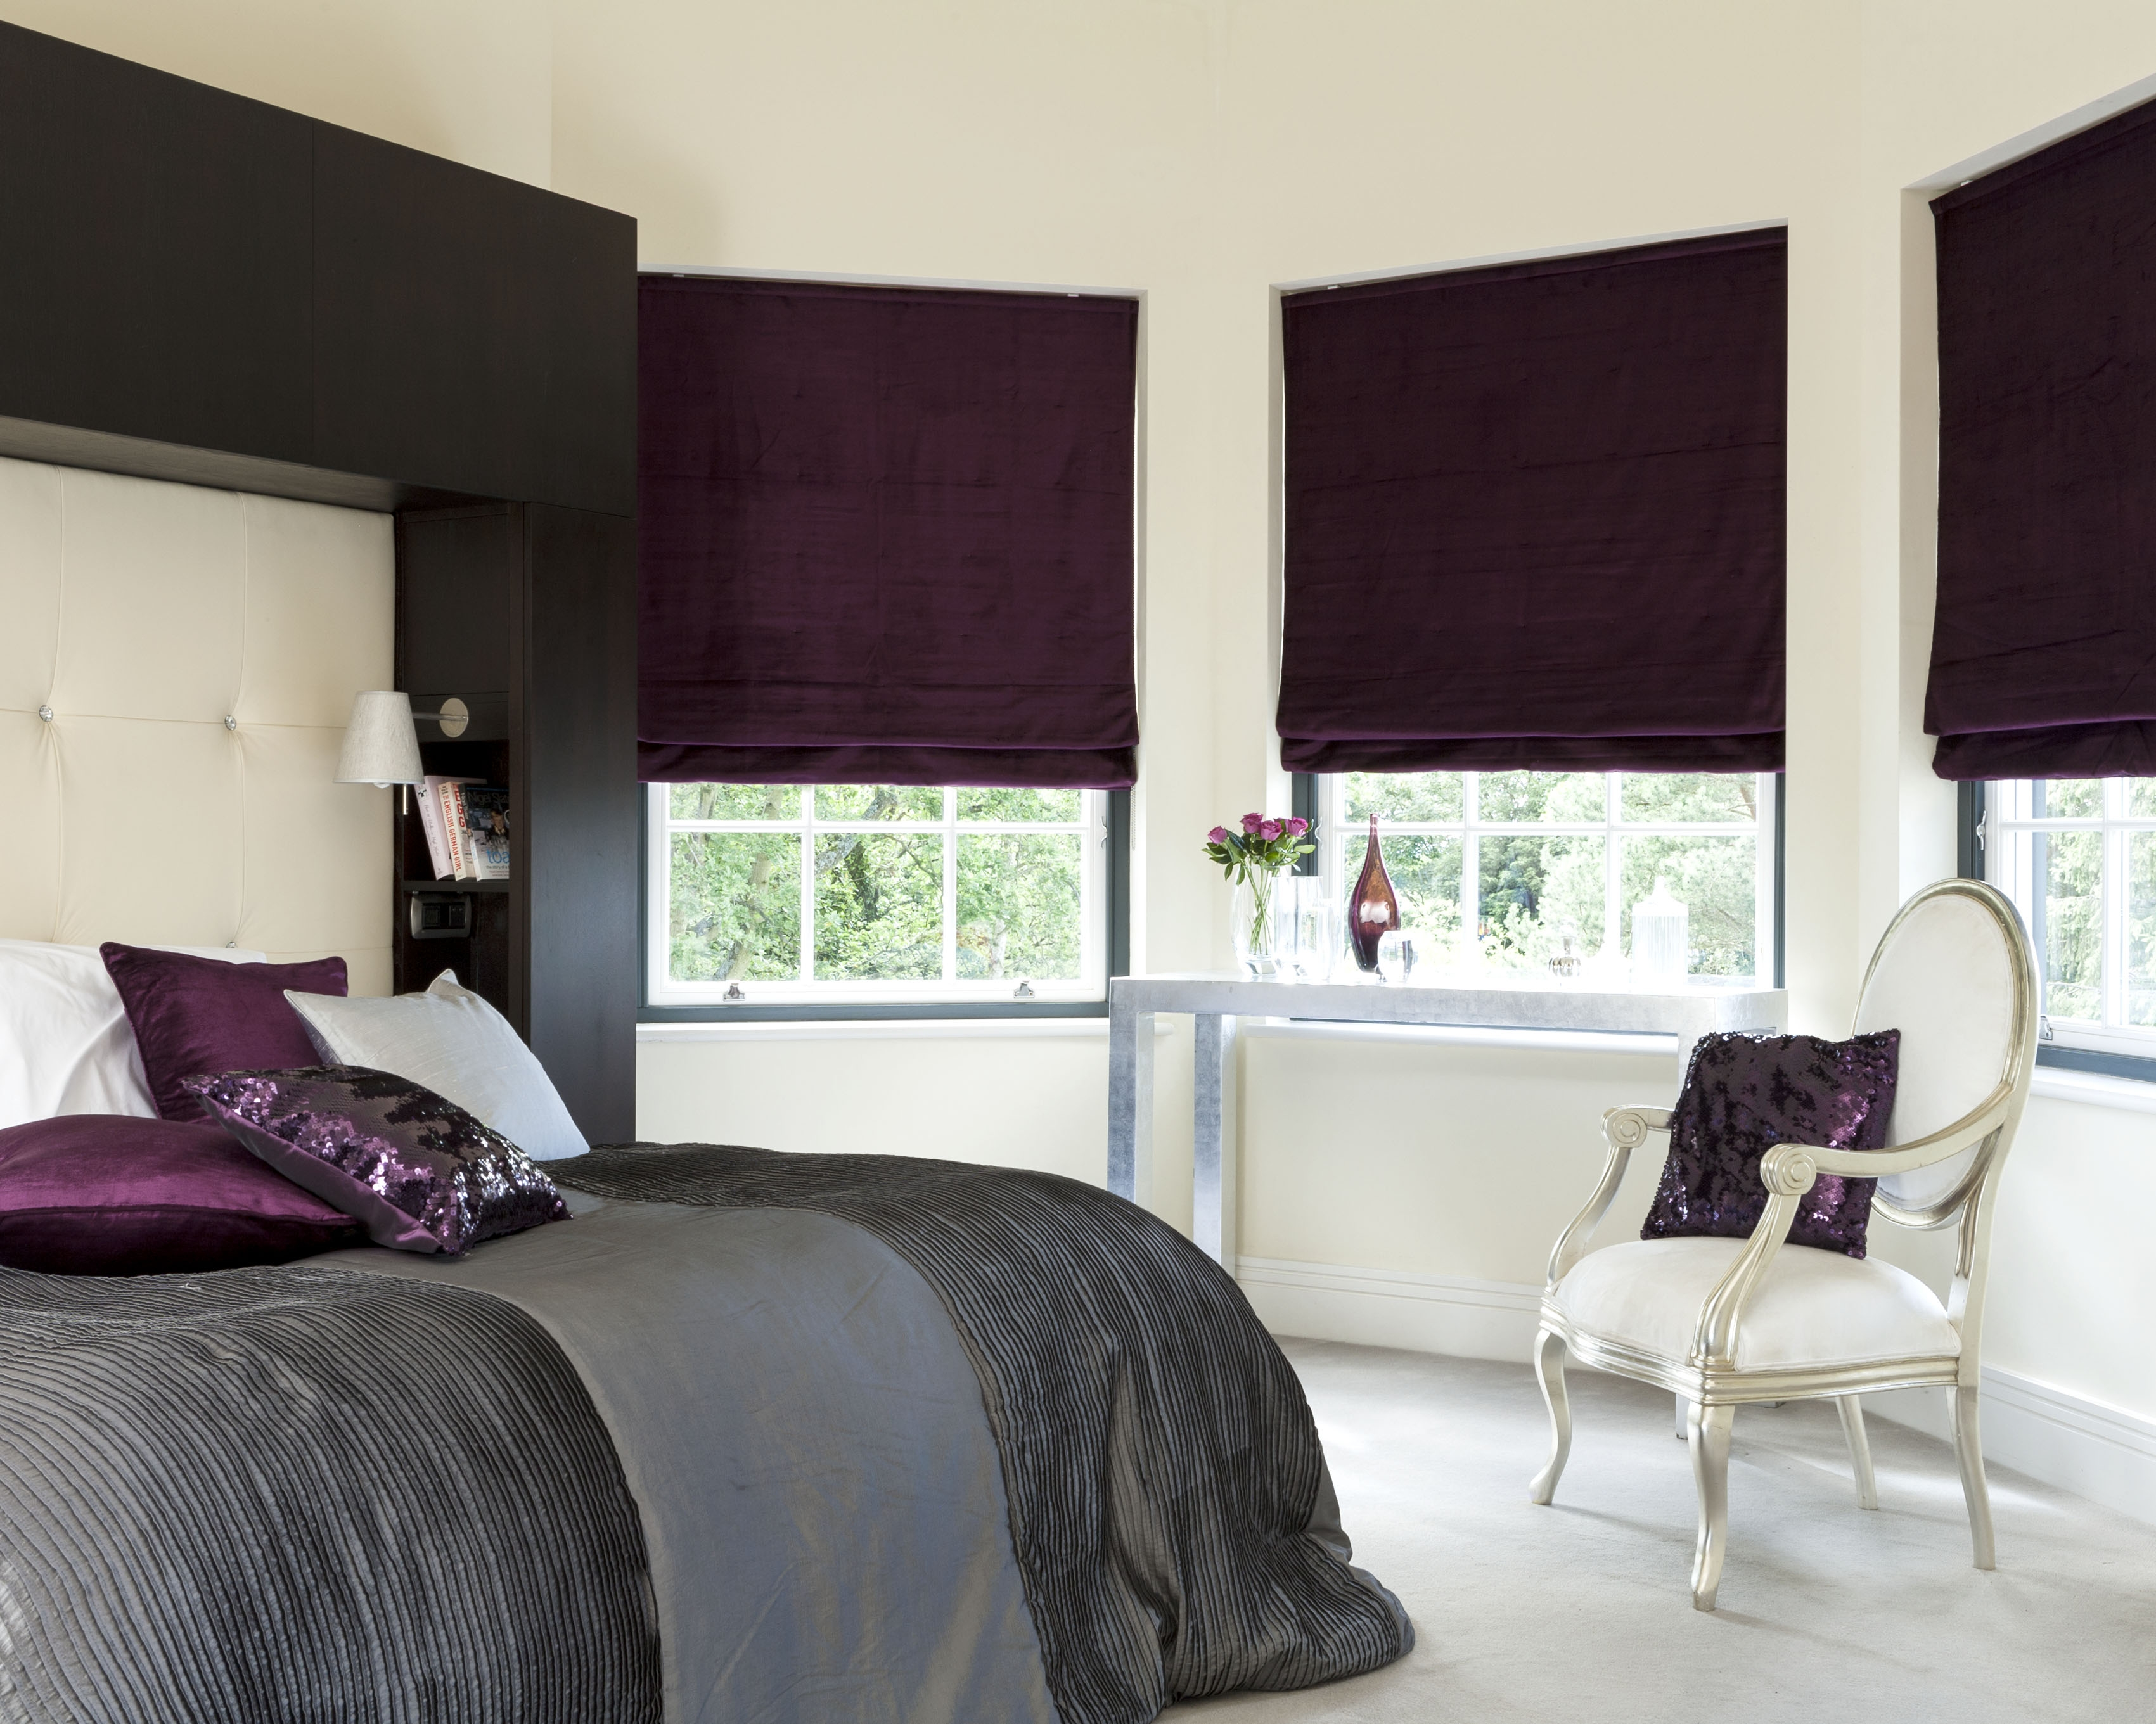 Cheapest Blinds Uk Ltd Neutral Green Roman Blinds With Regard To Neutral Roman Blinds (View 6 of 15)